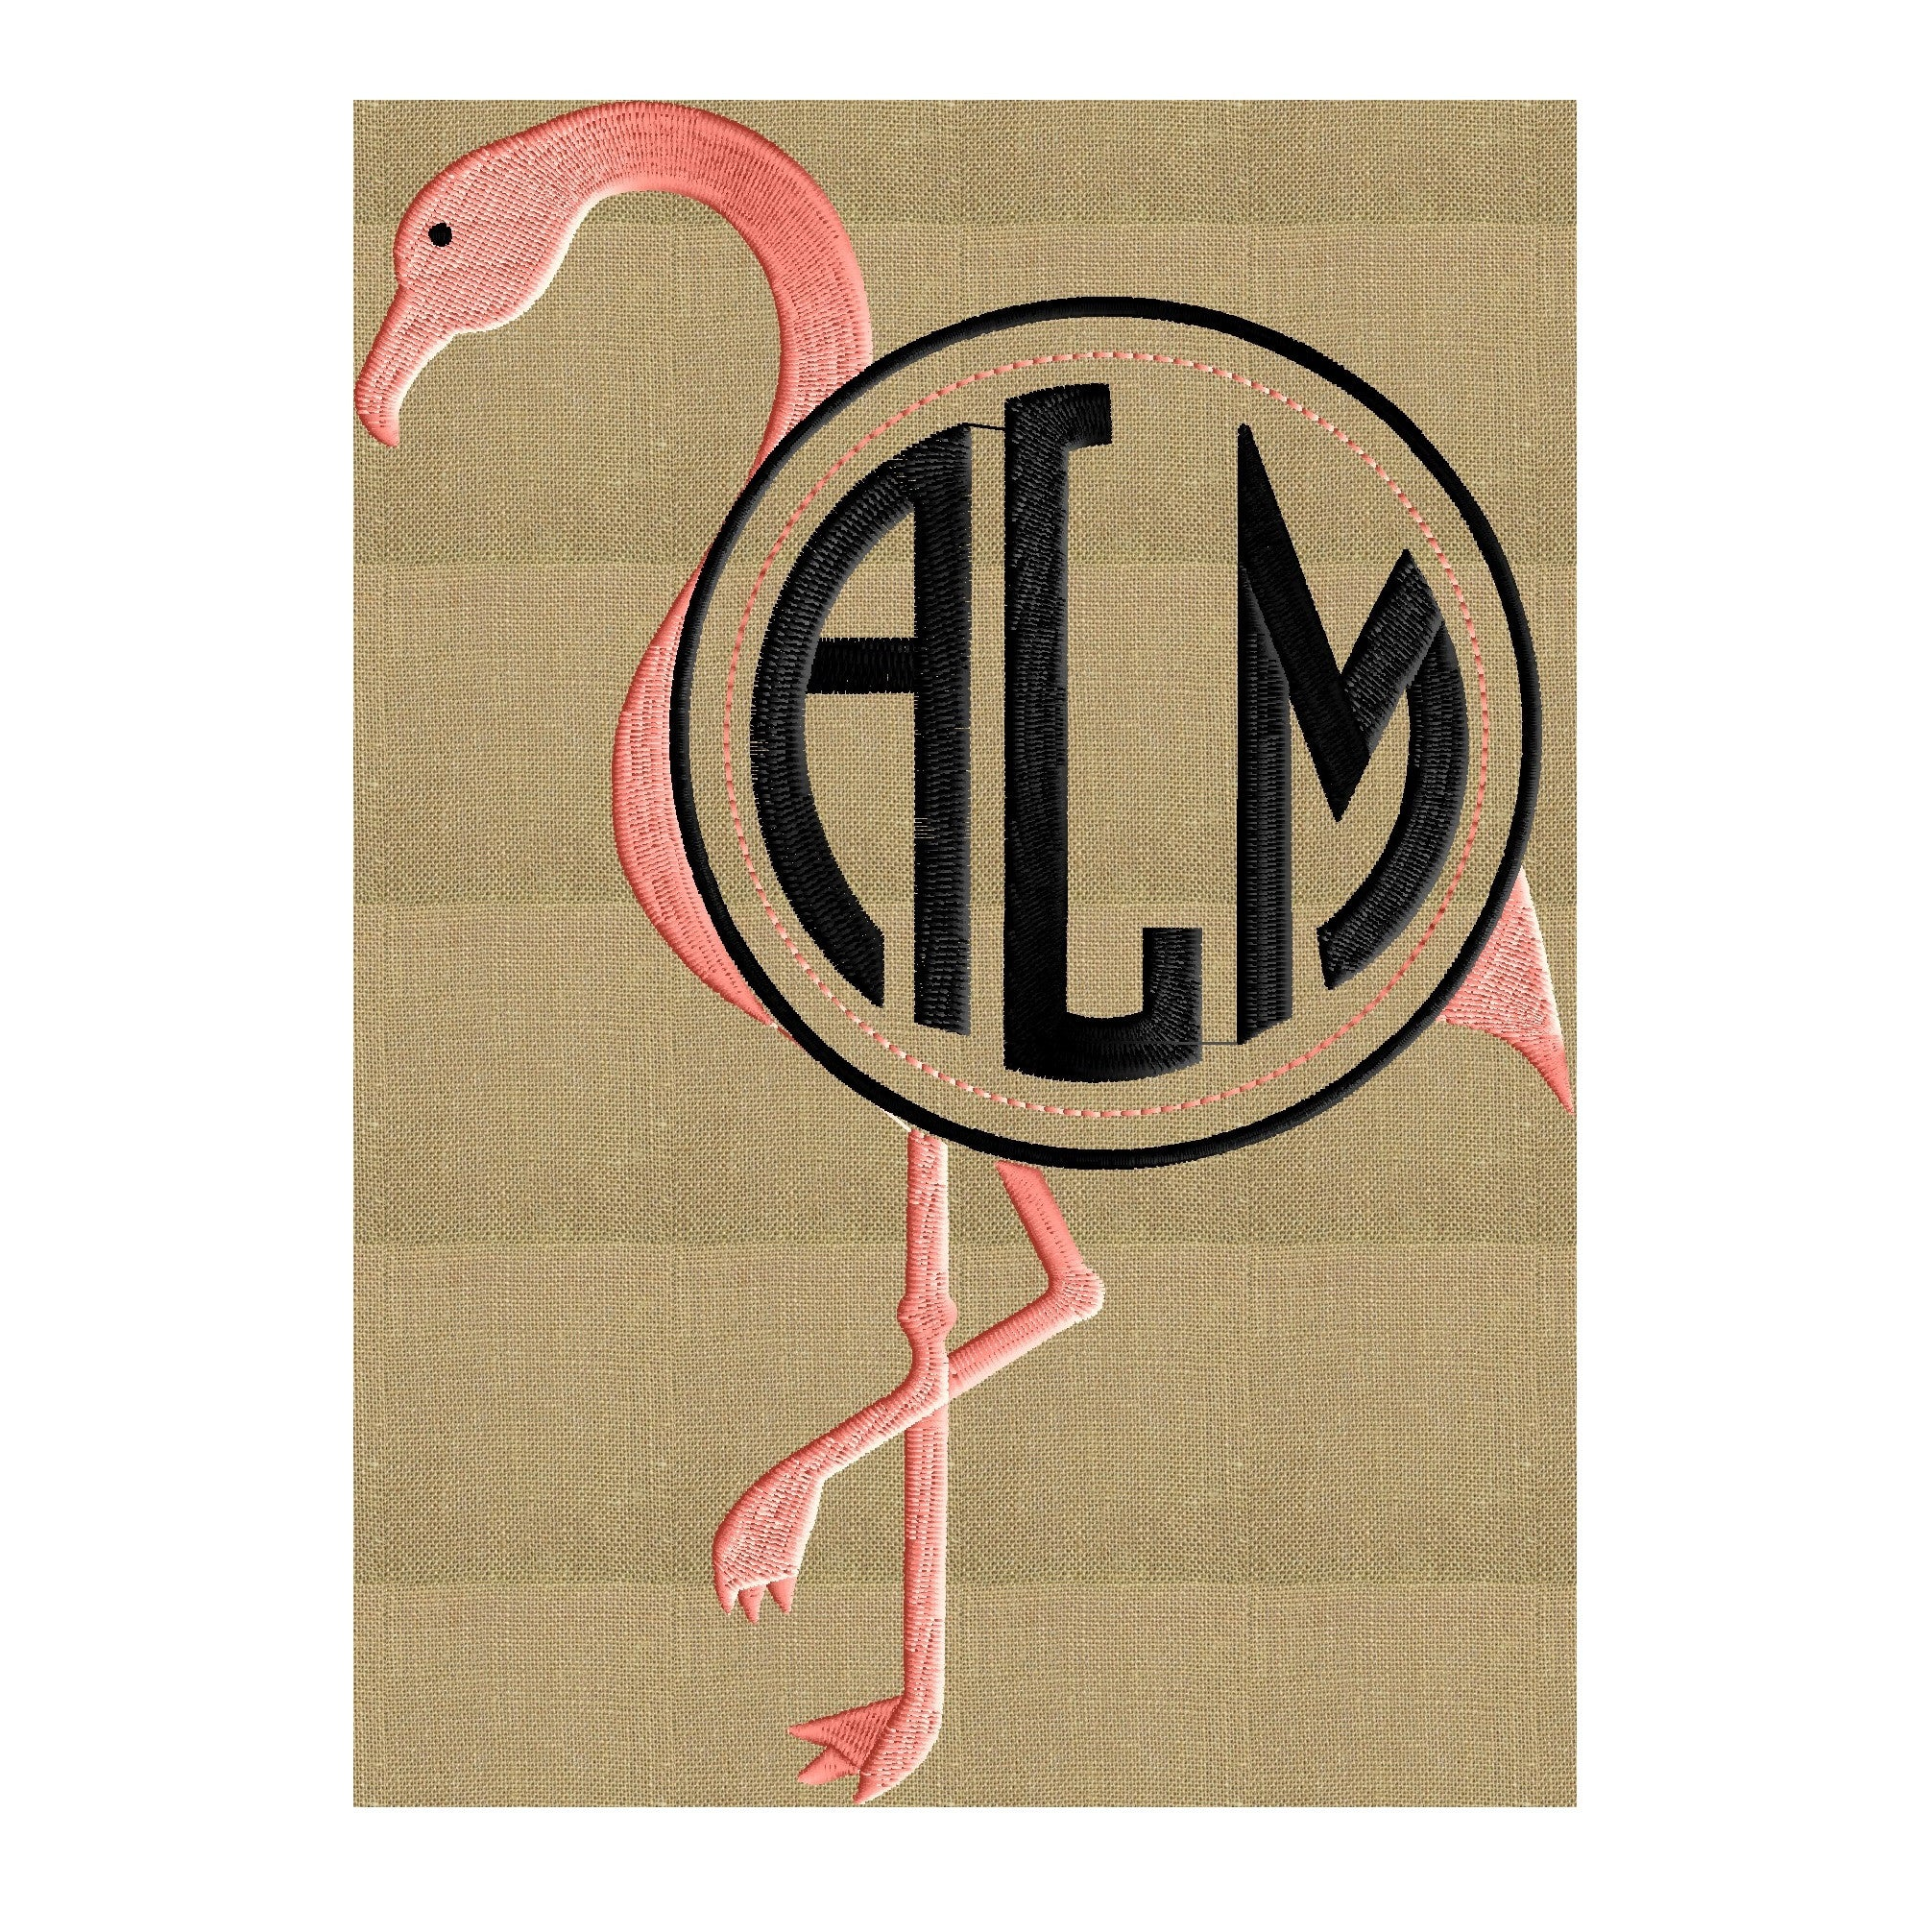 Flamingo Font Frame Monogram Embroidery Design - Font not included - Instant download - Hus Dst Exp Vp3 Jef Pes formats